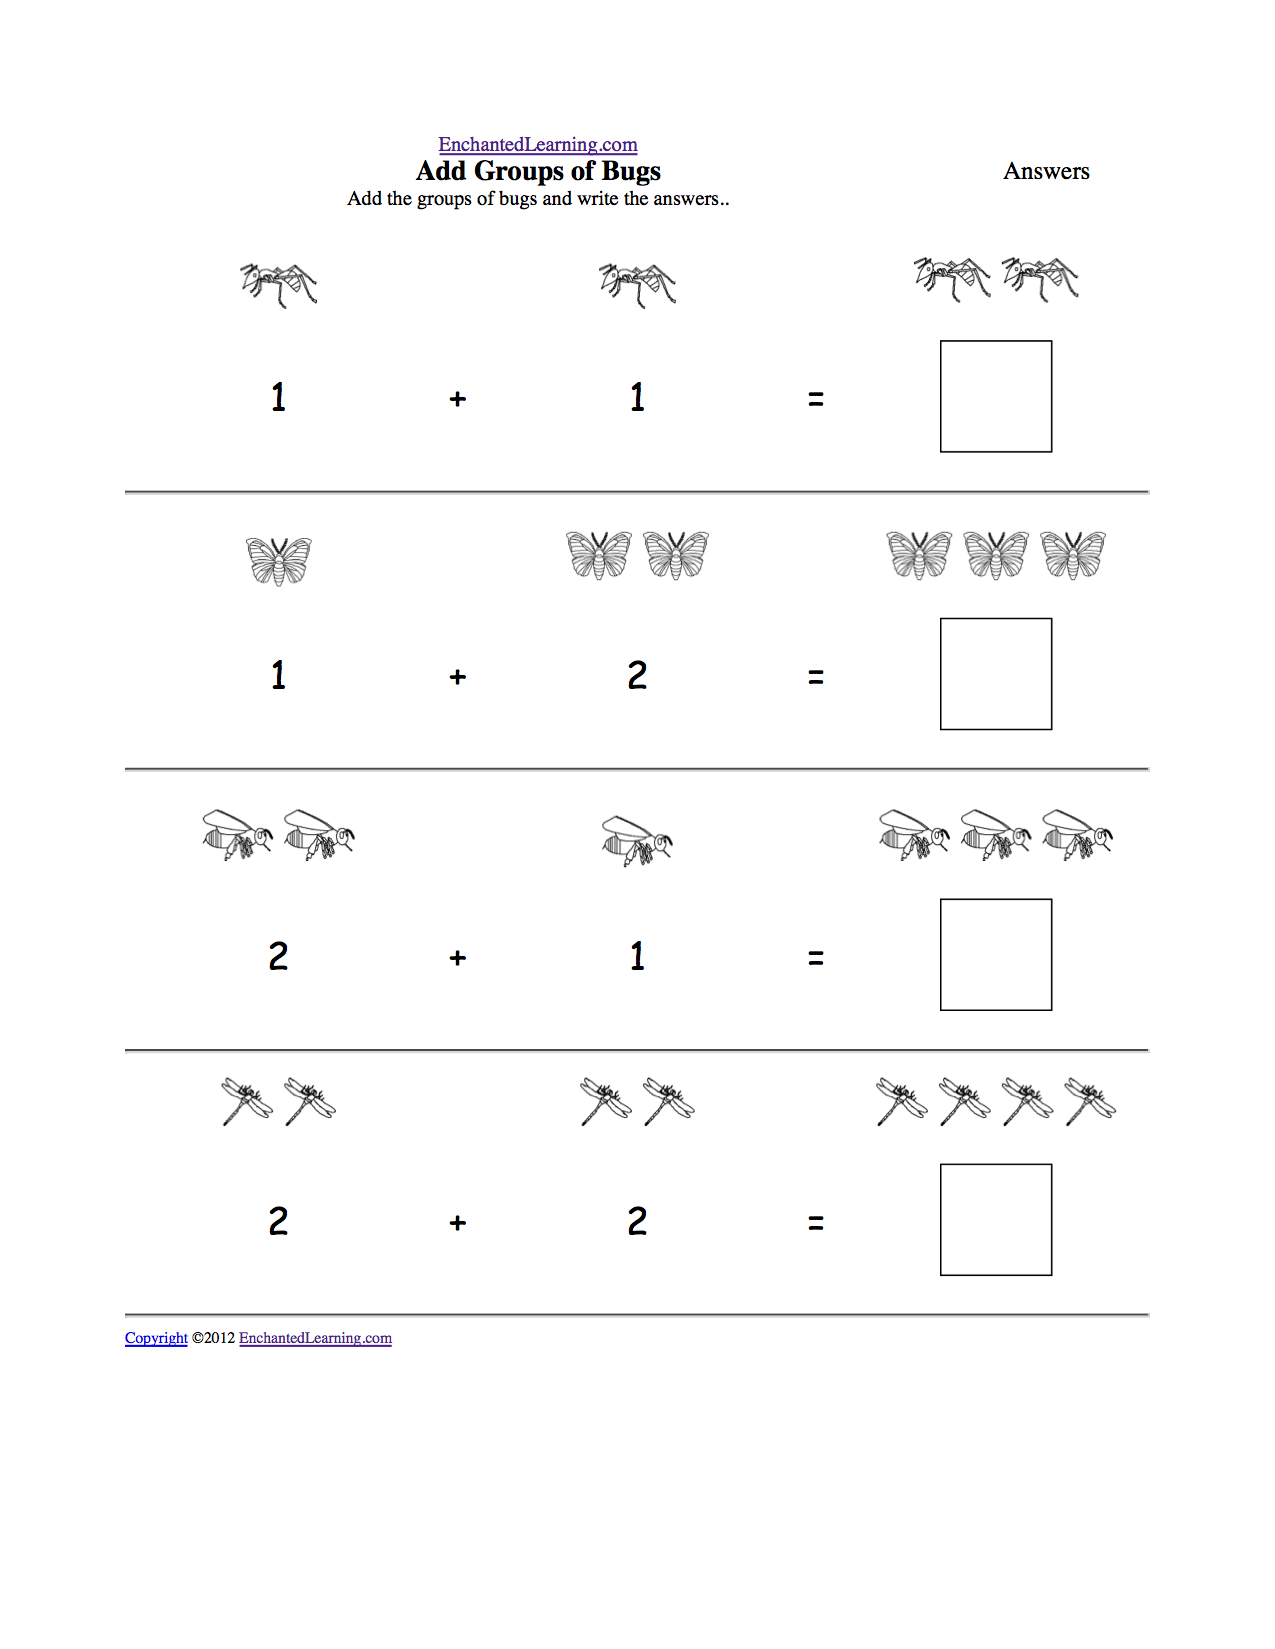 Animal Math Worksheets at EnchantedLearning – College Level Math Worksheets